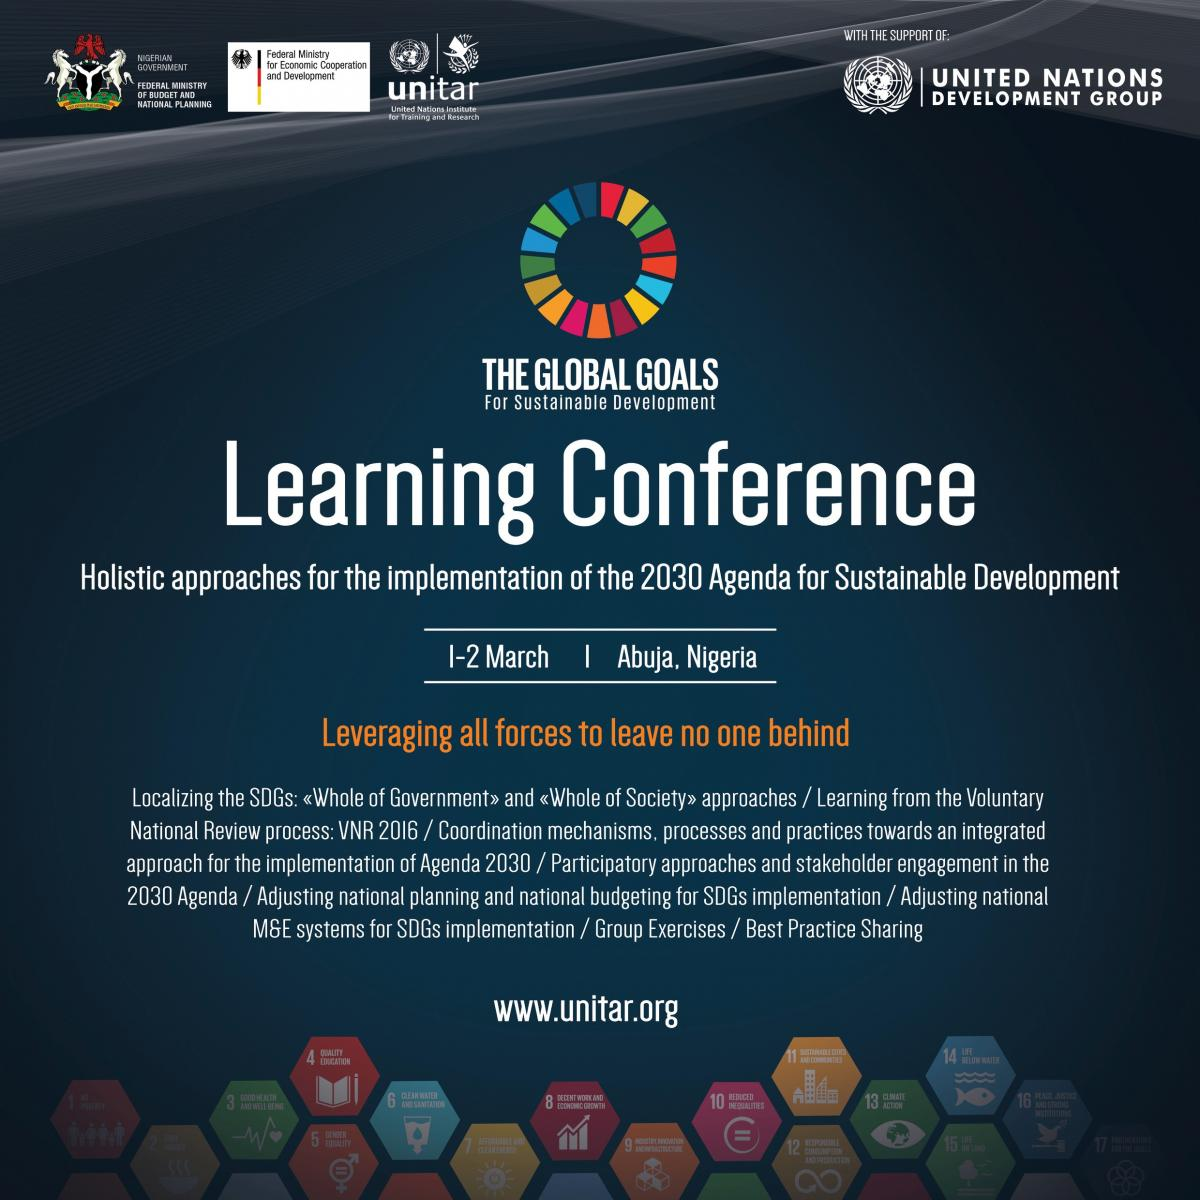 holistic approaches for the implementation of the 2030 Agenda conference